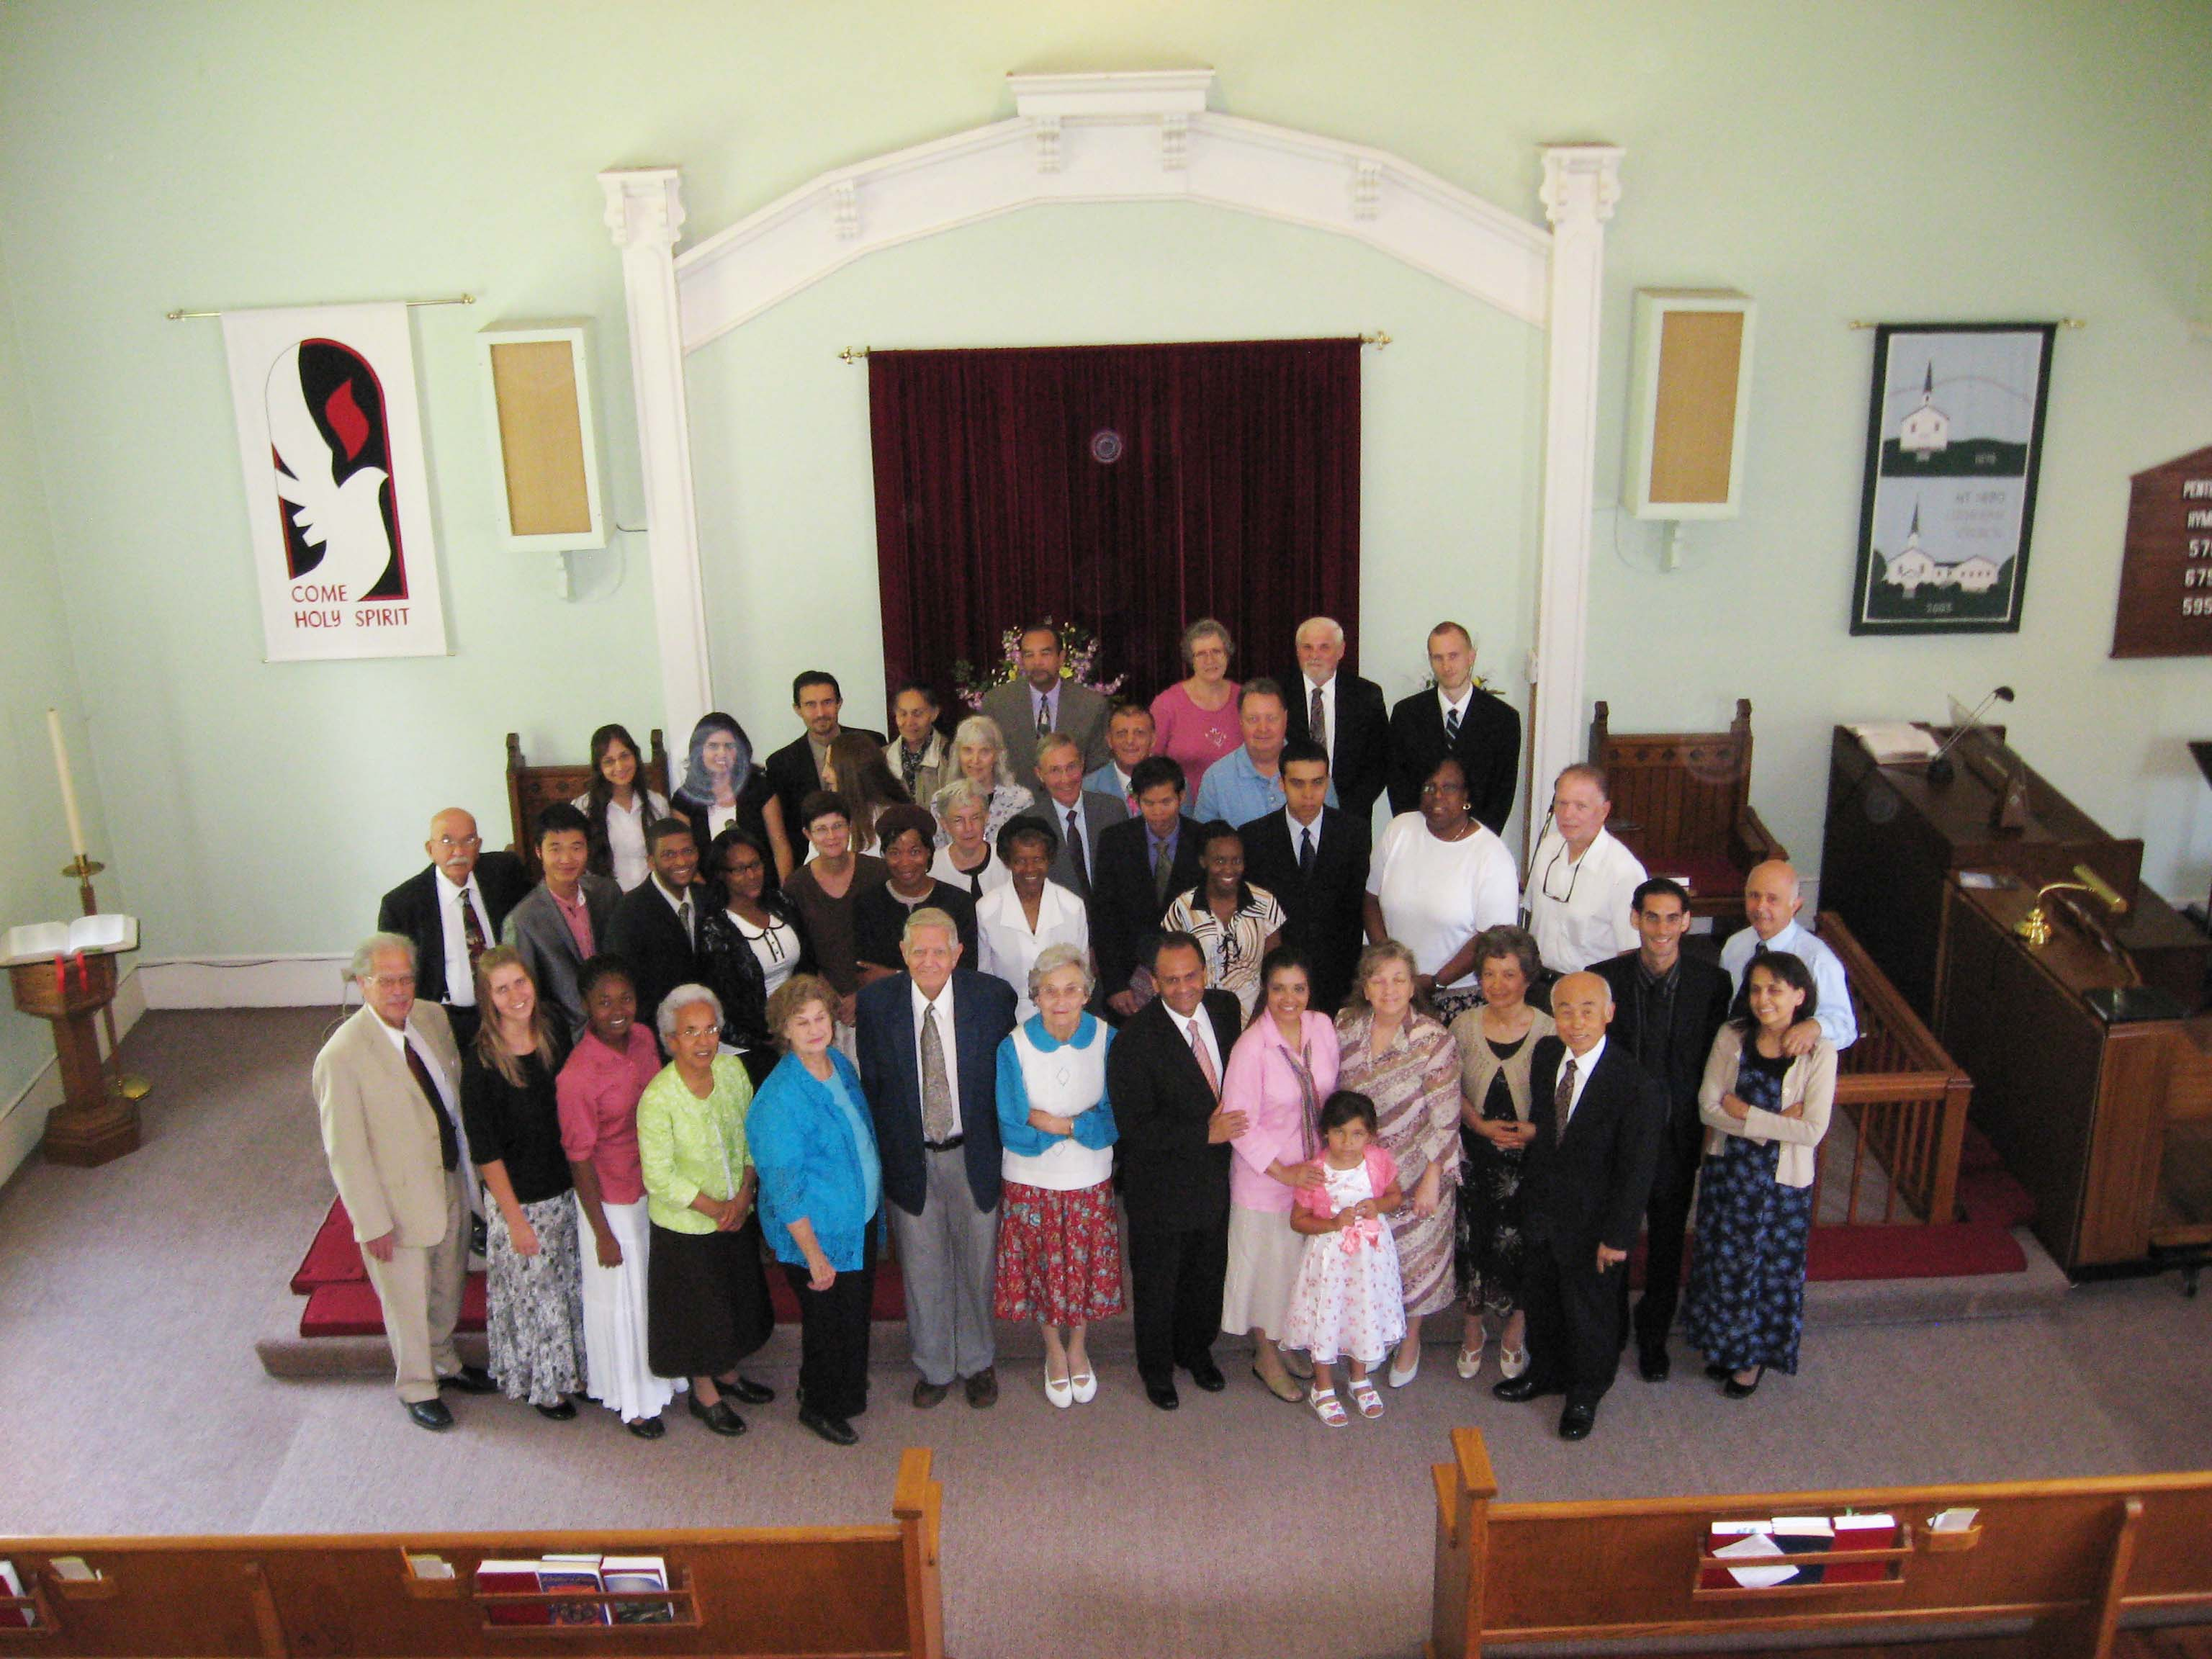 Dr. William Shea and Congregation